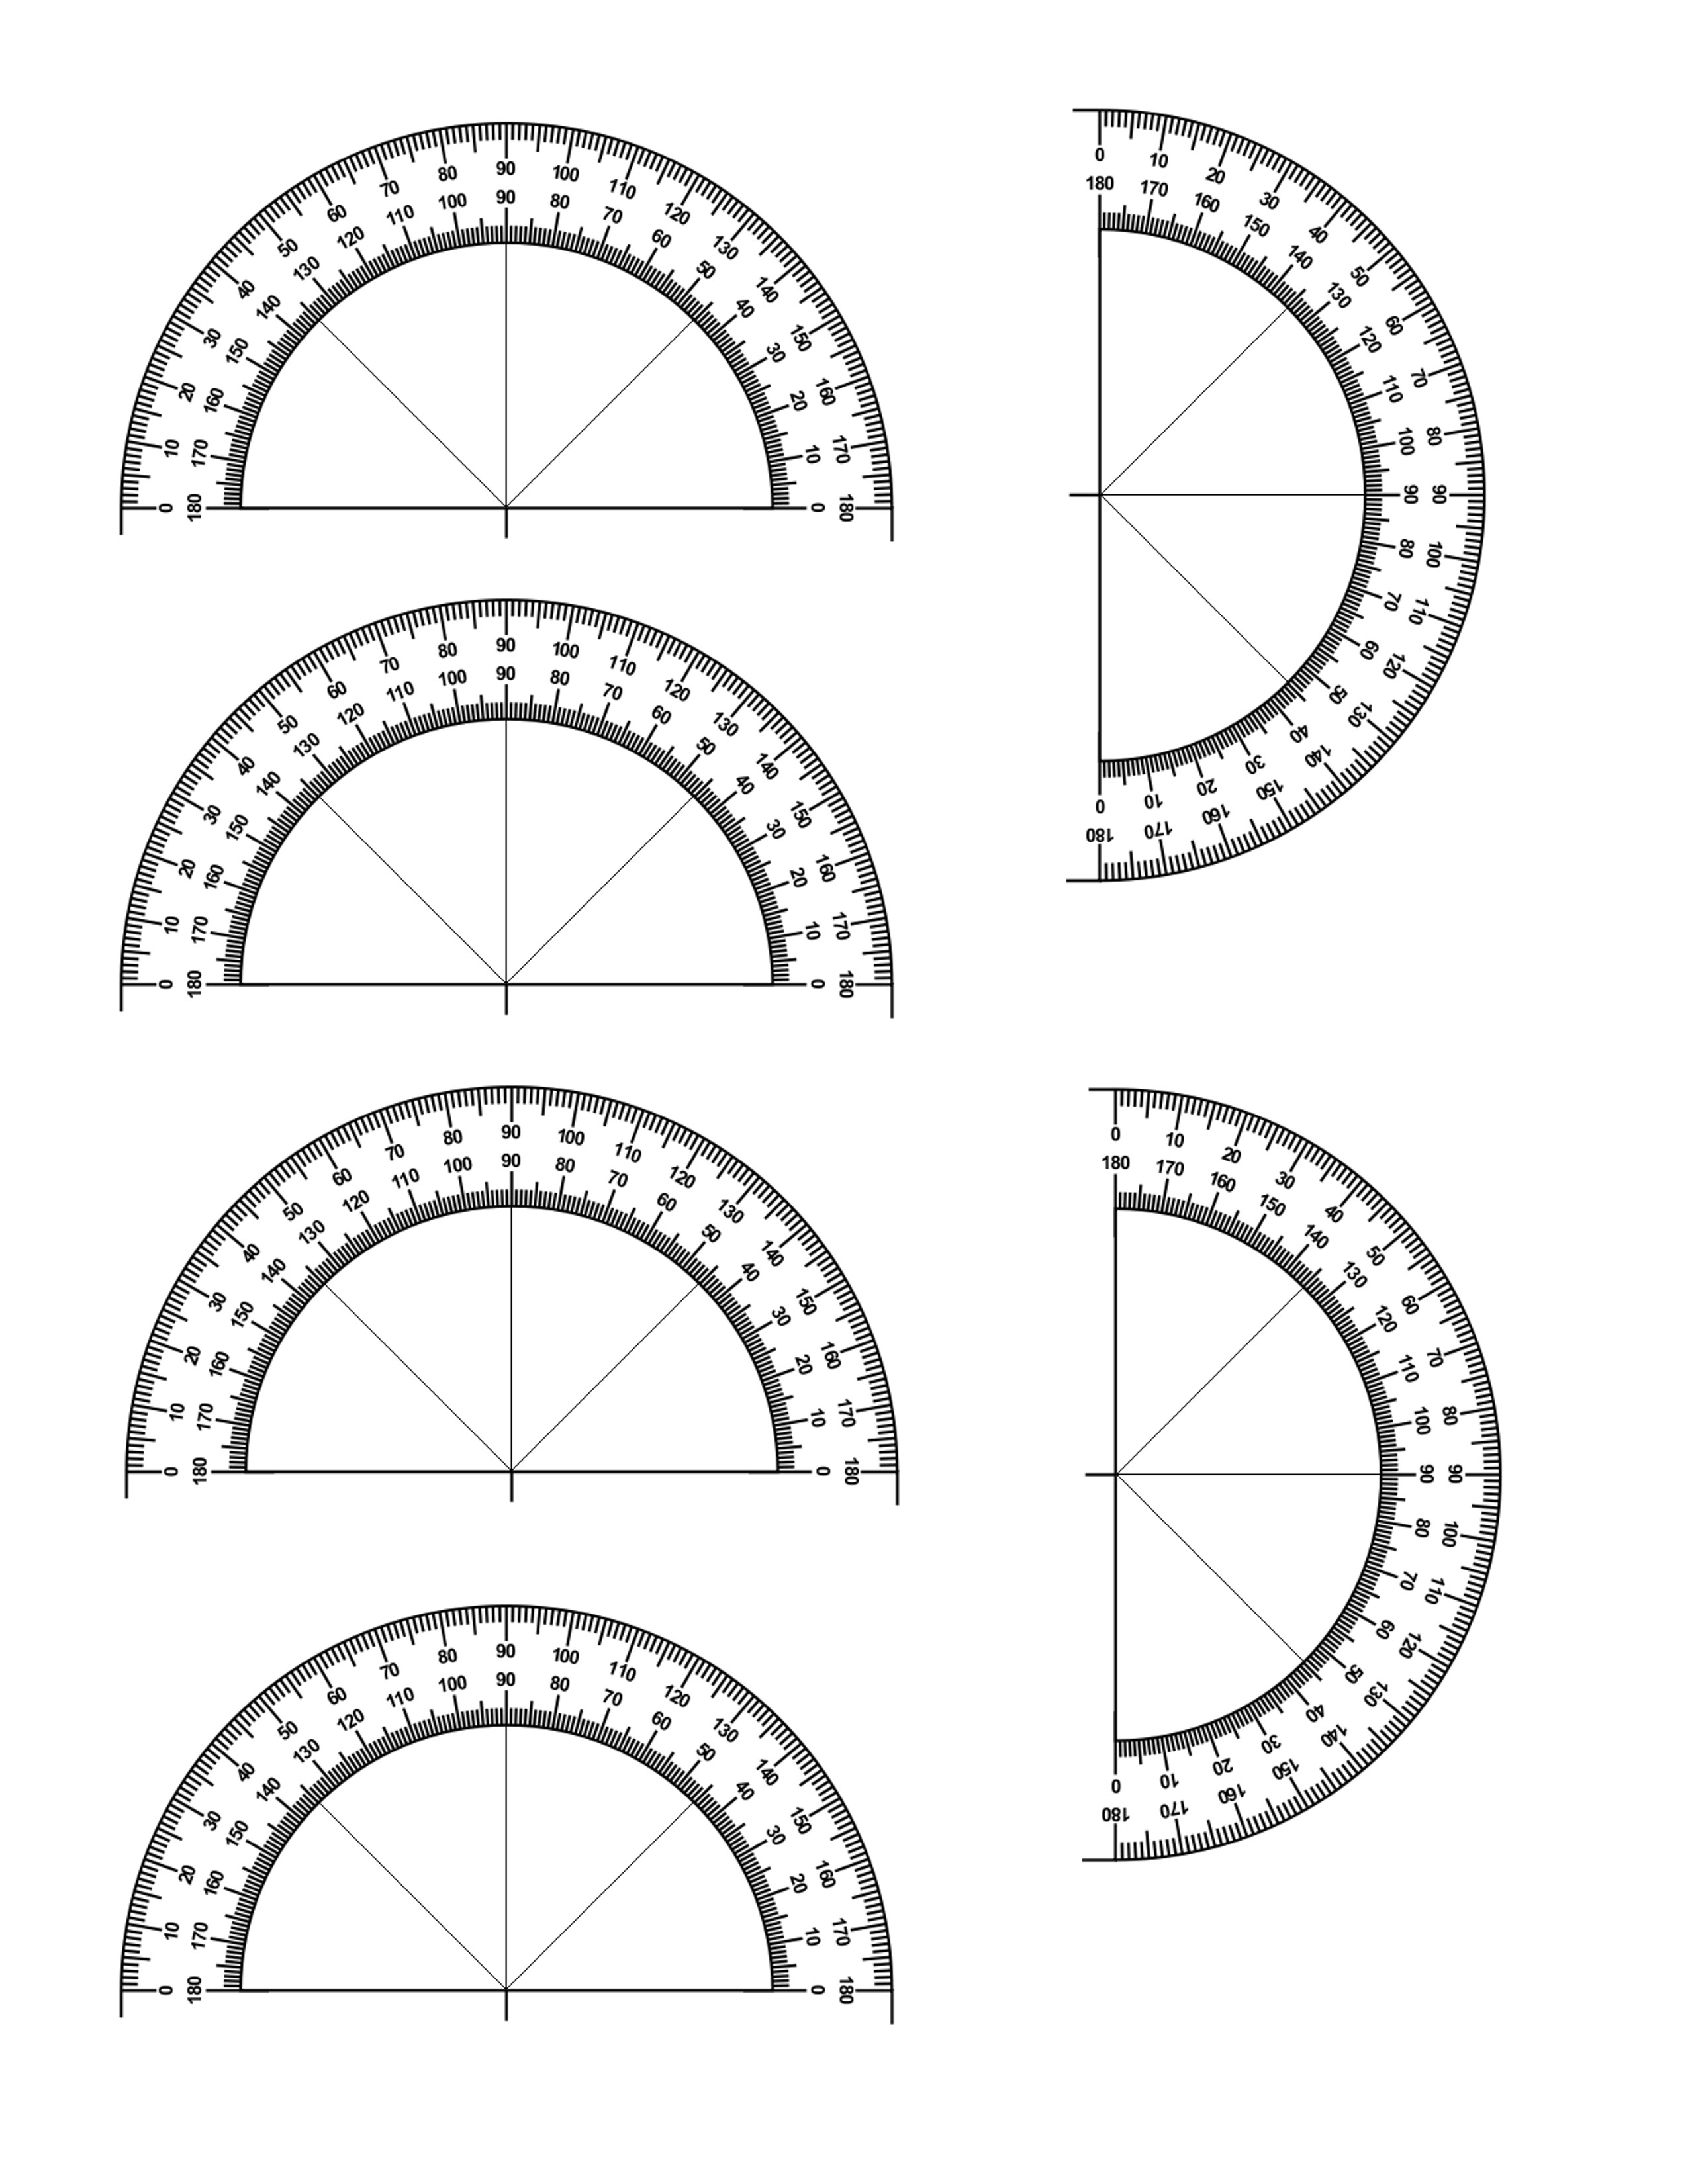 worksheet Print Protractor similiar cut out printable protractor keywords protractors print on a transparency and rulers should be actual cm